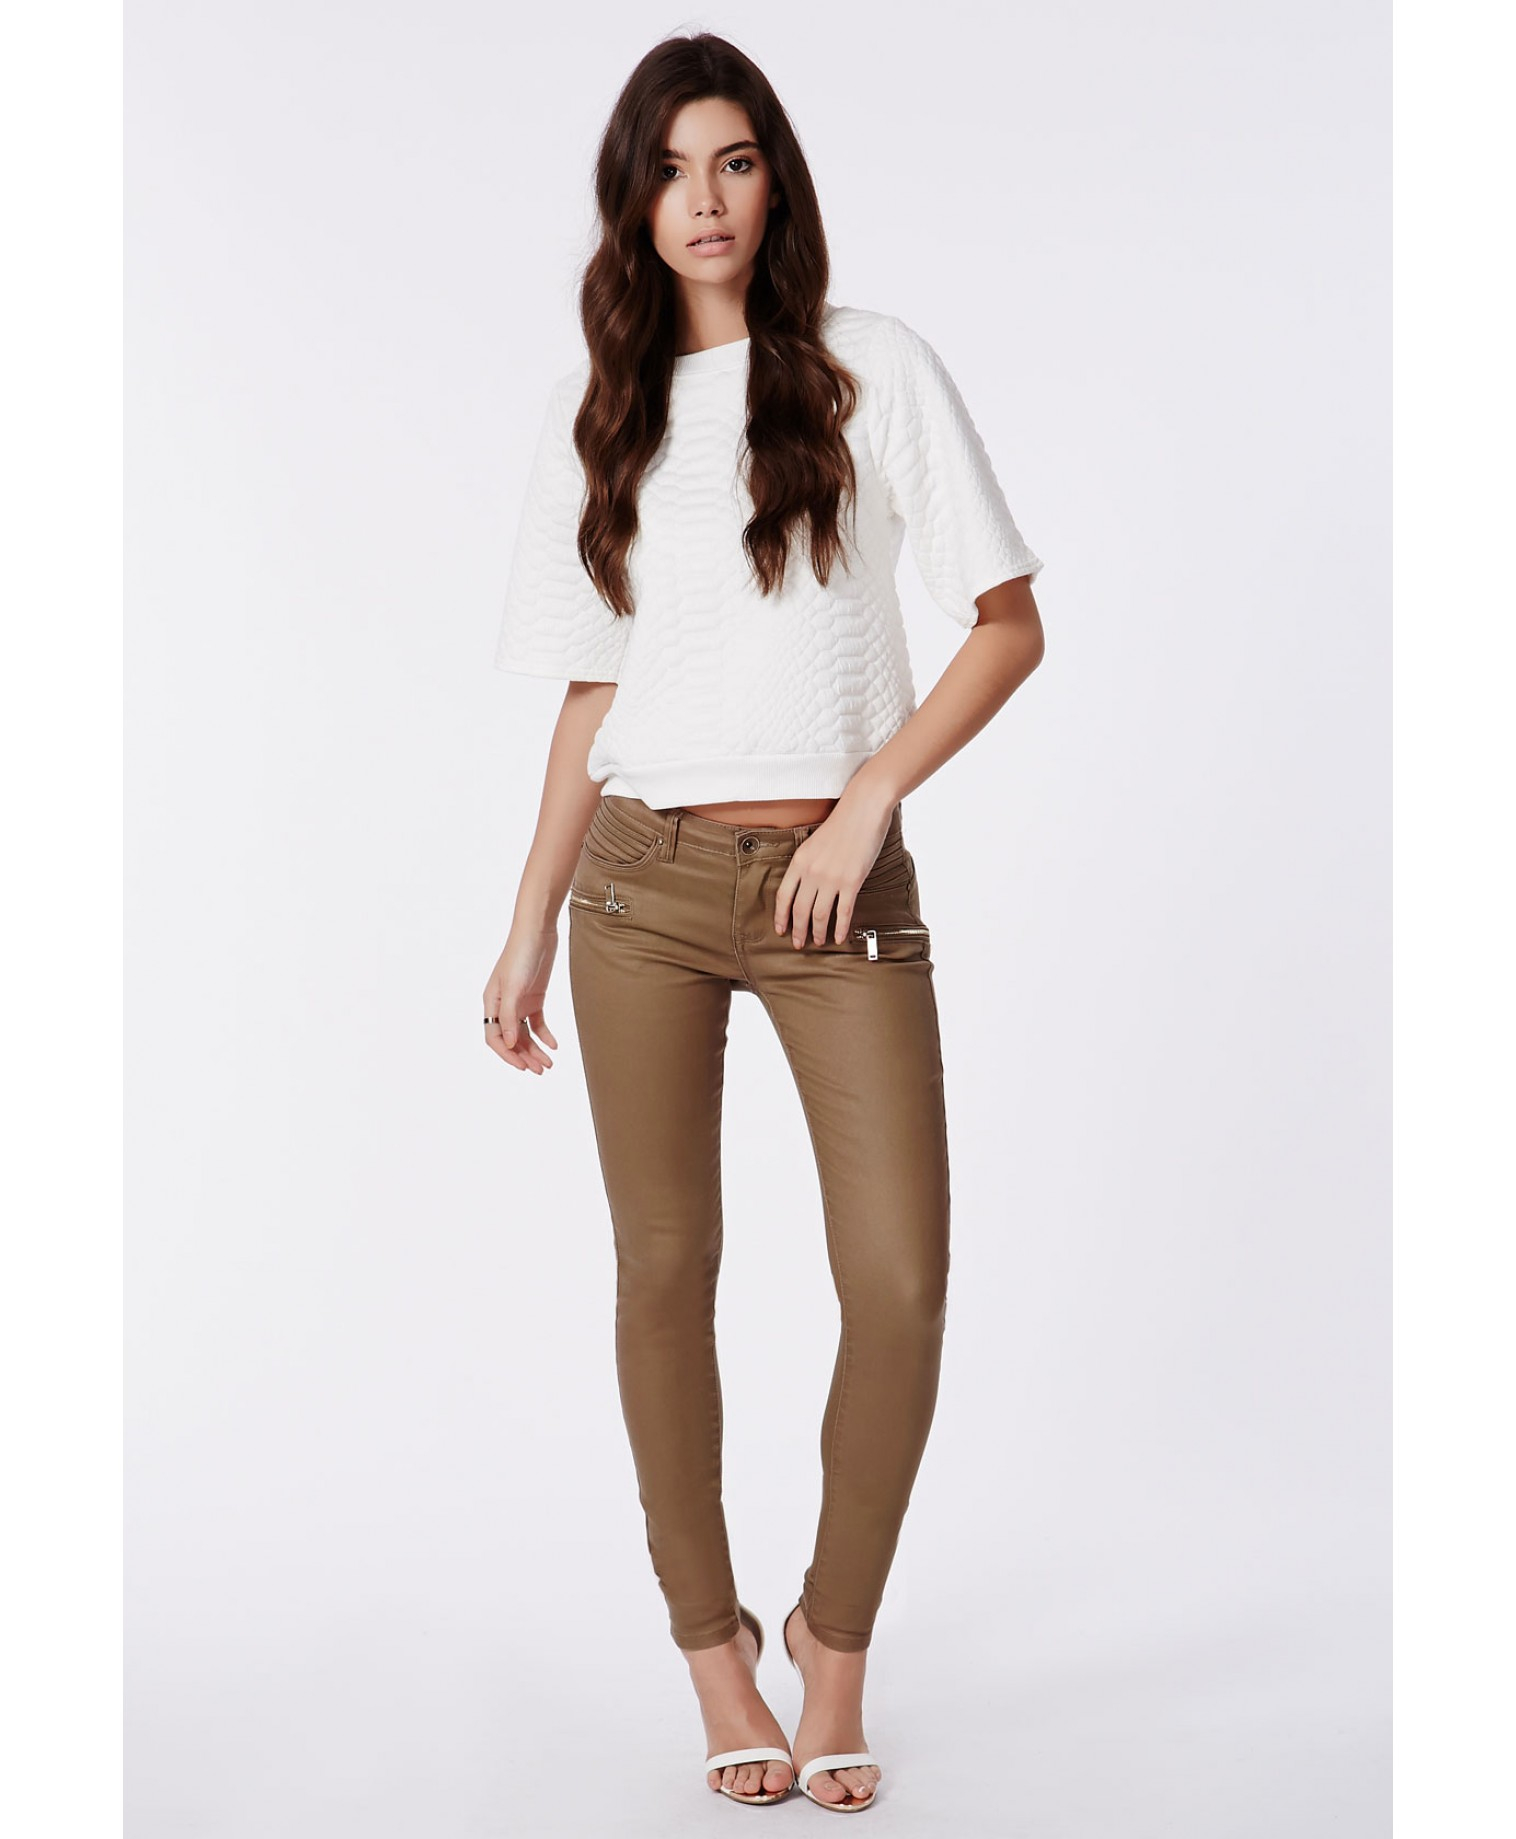 Collection Tan Skinny Jeans Pictures - The Fashions Of Paradise